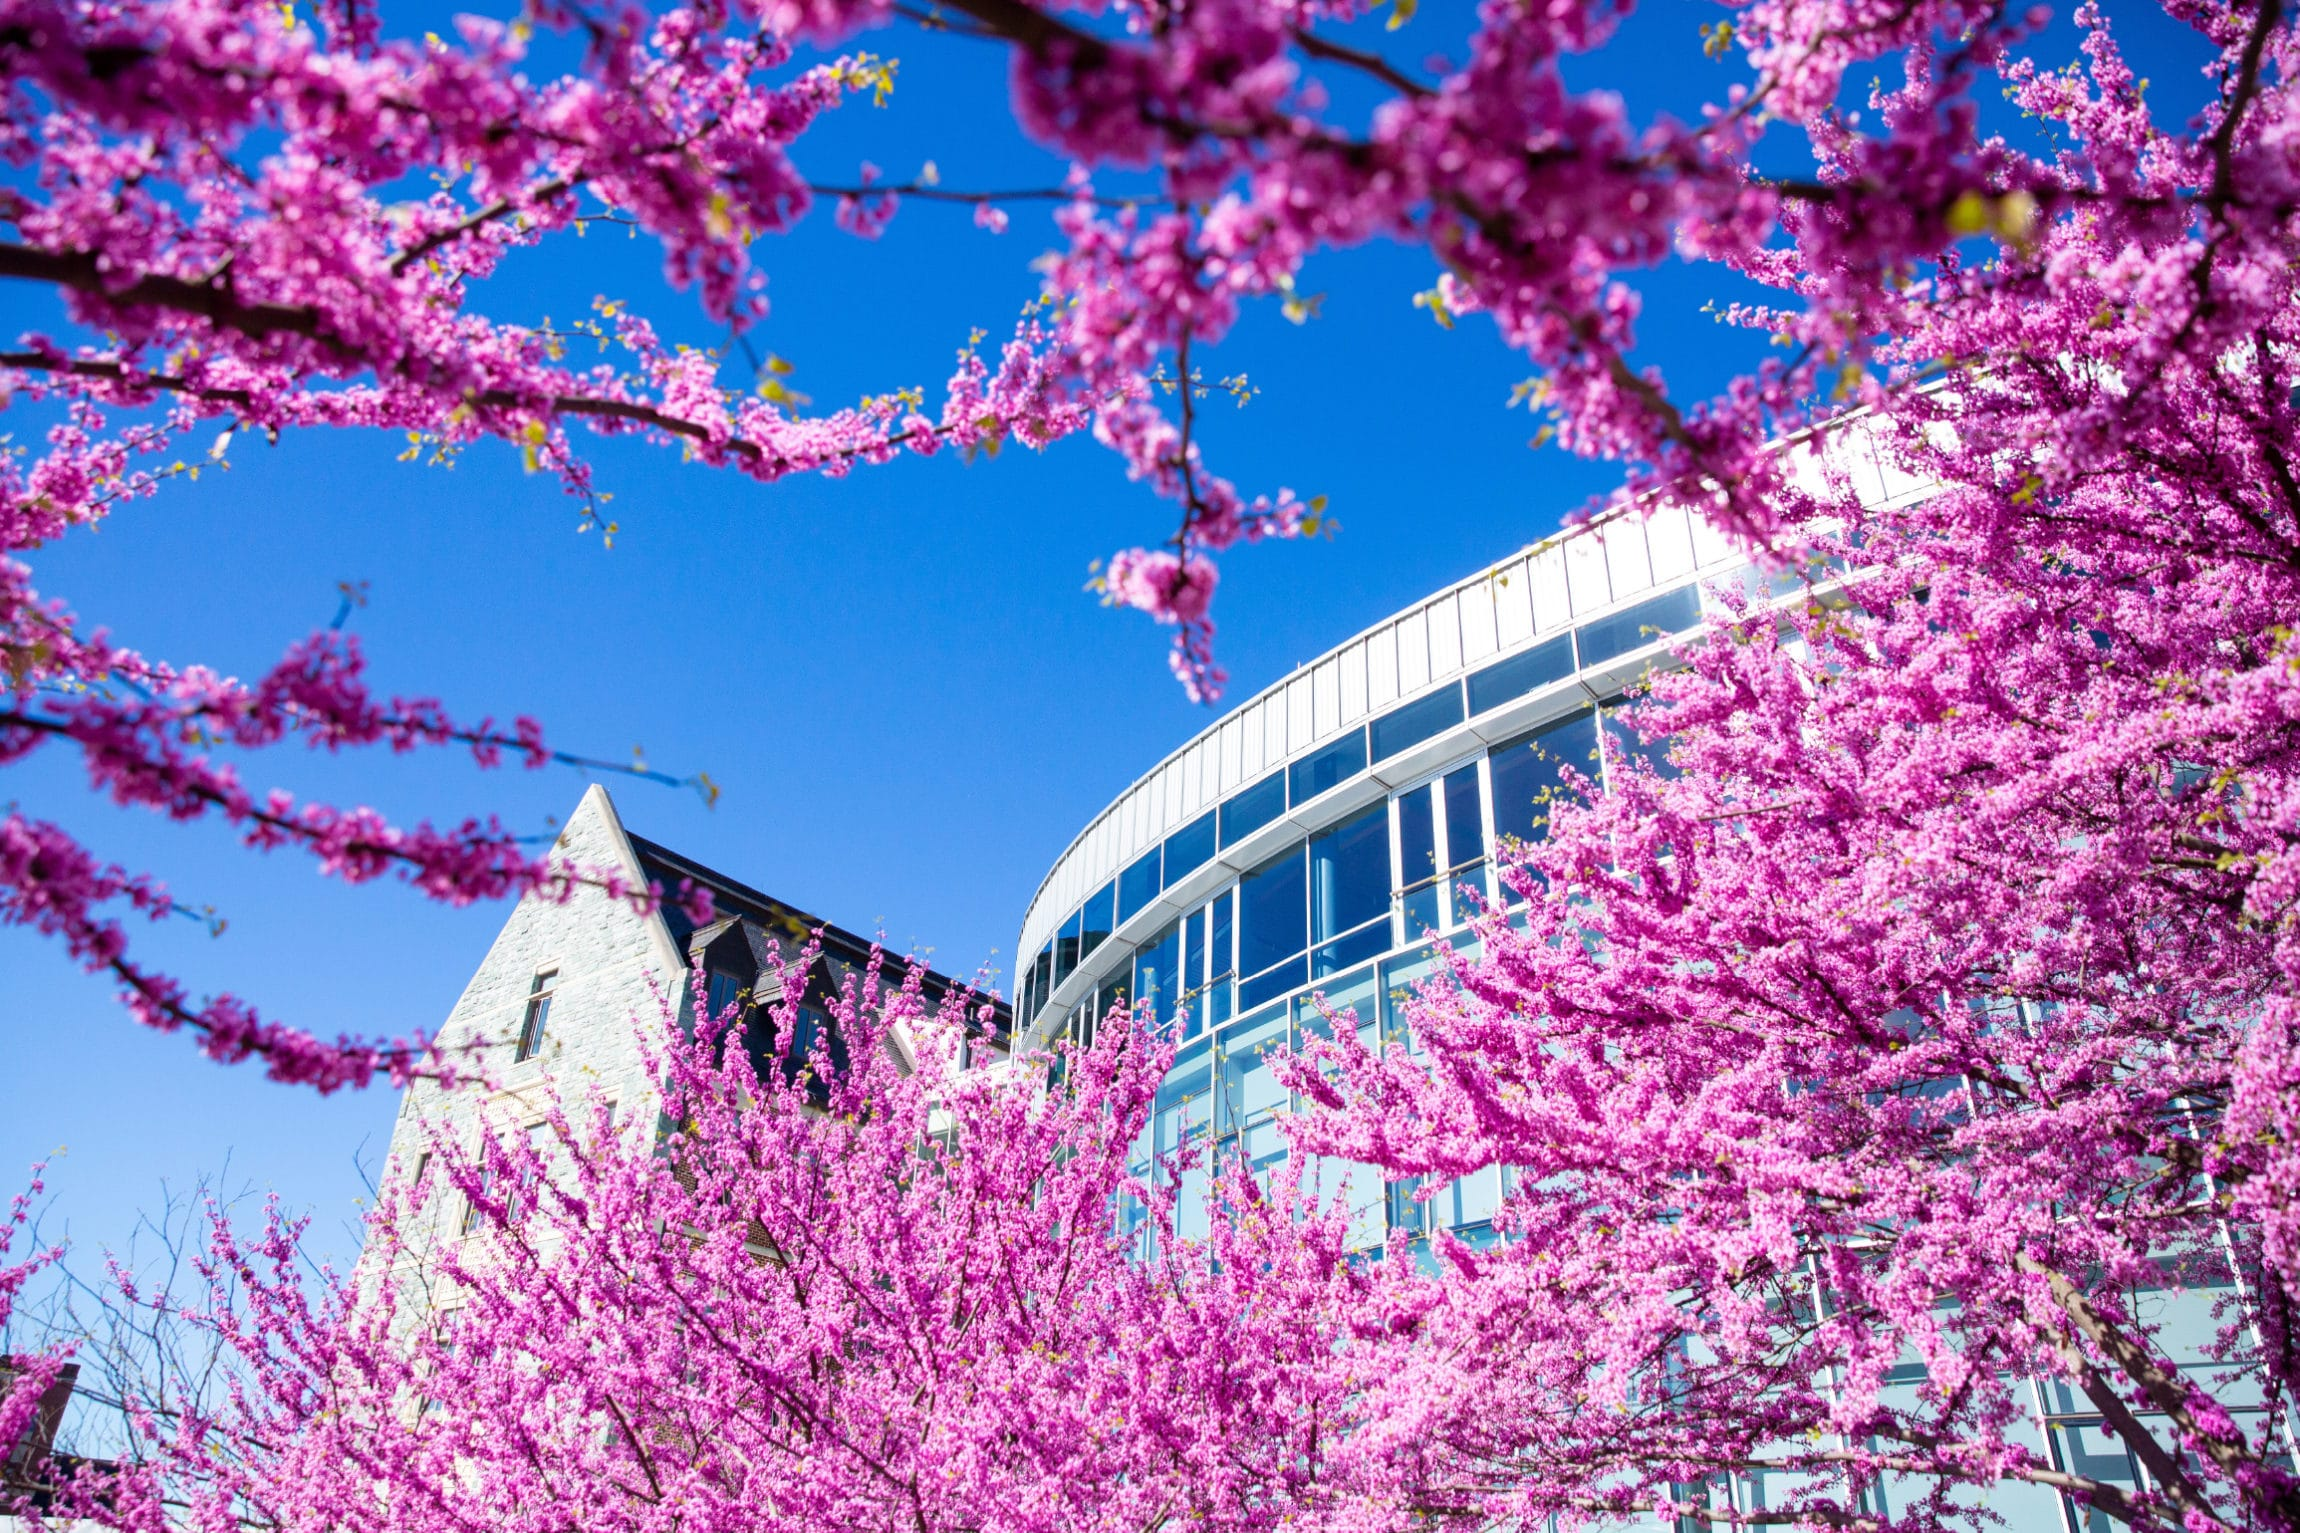 Georgetown business school with cherry blossoms covering the entrance